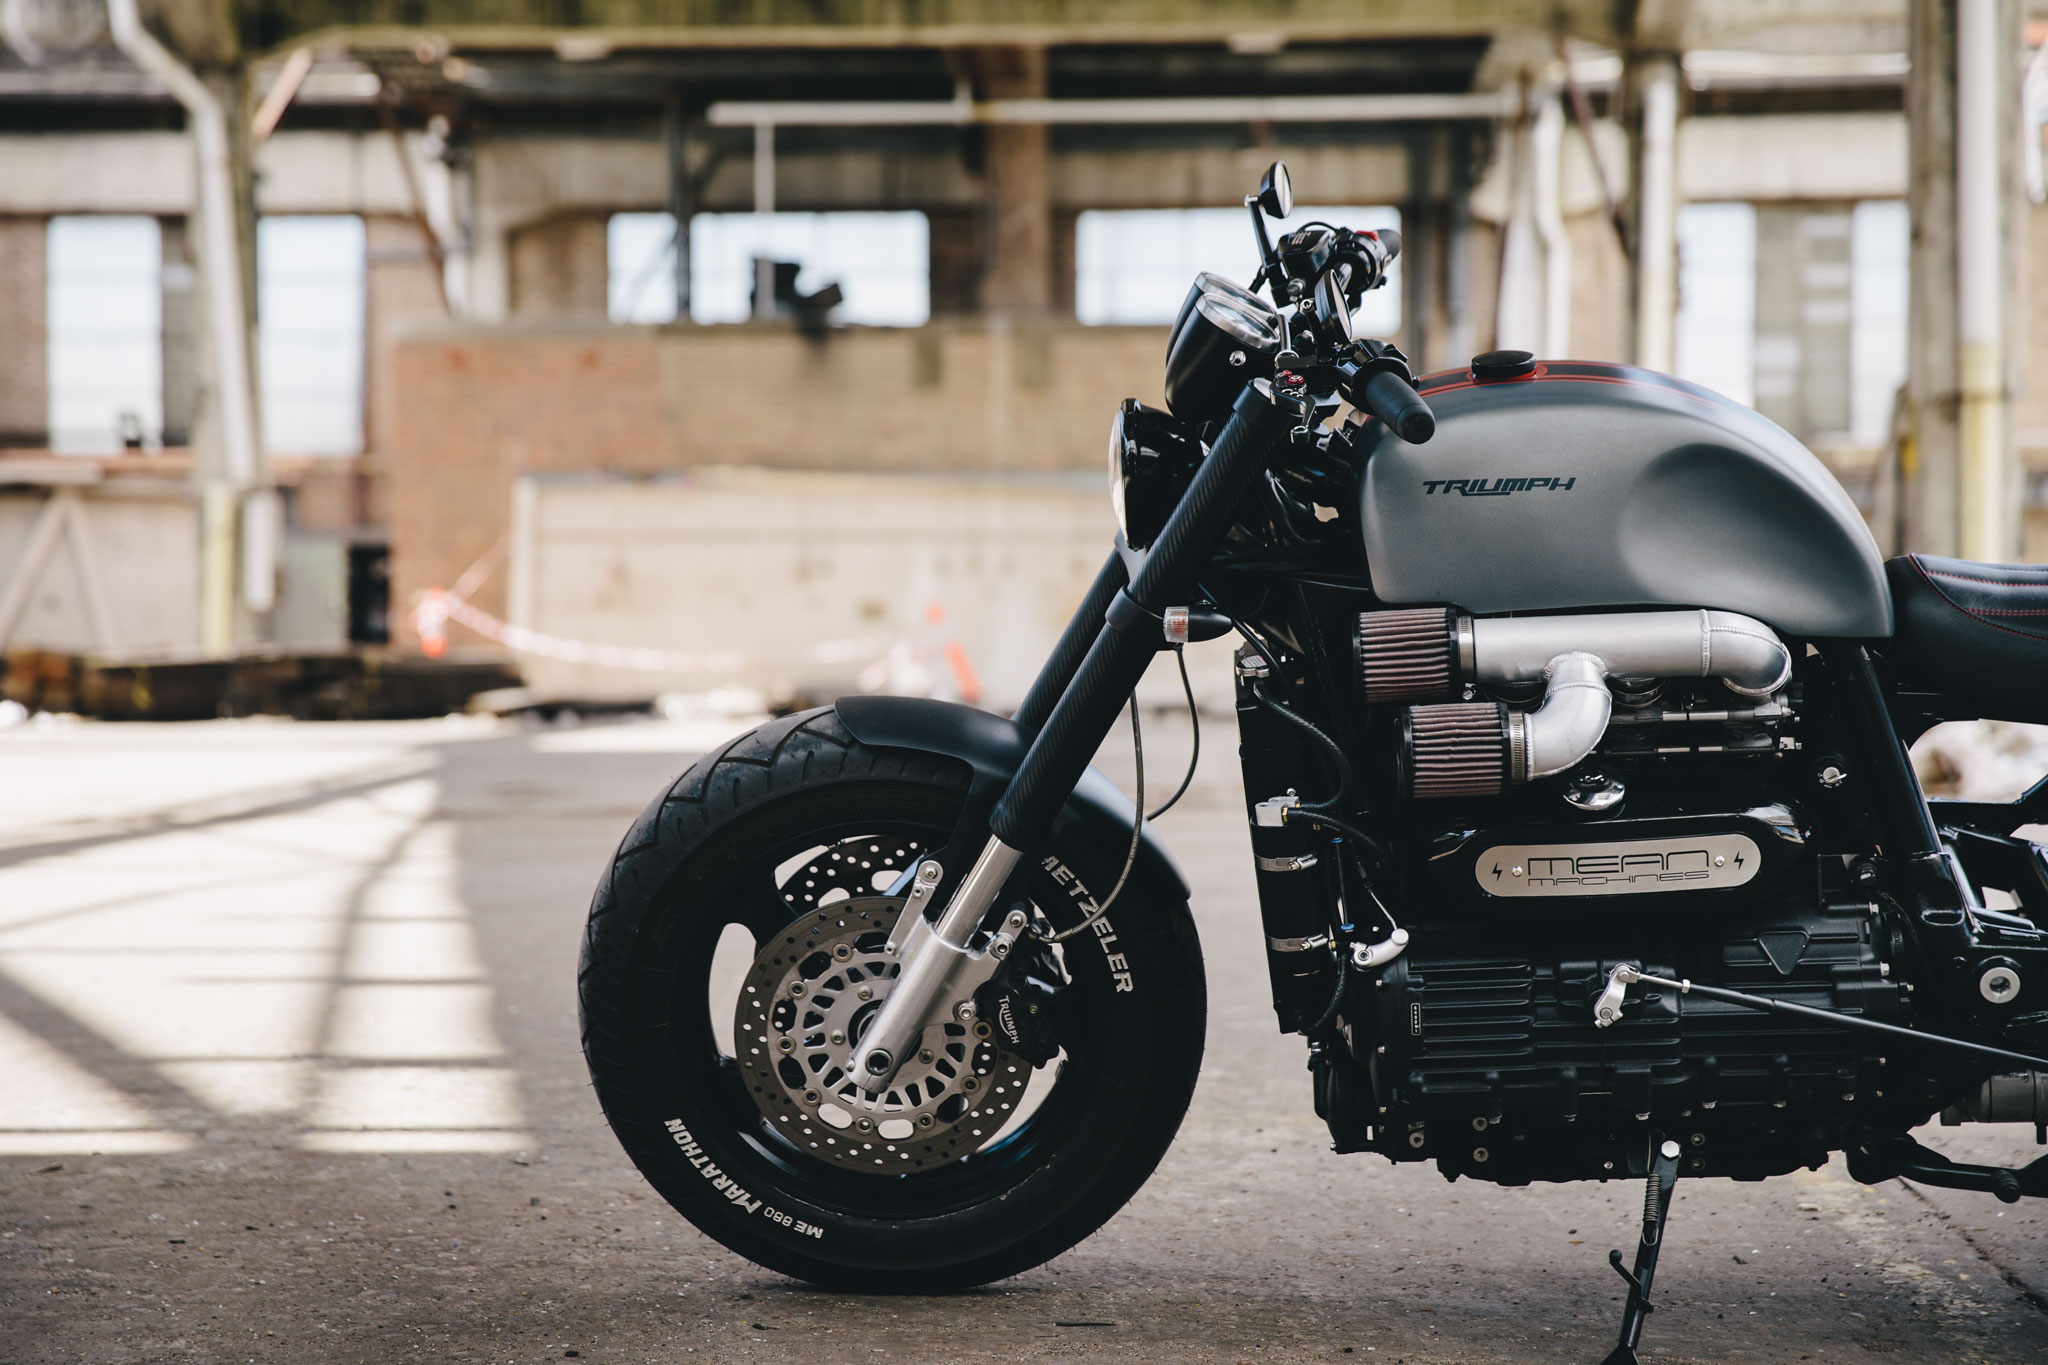 ttriumph_rocket_cafe_racer_0639